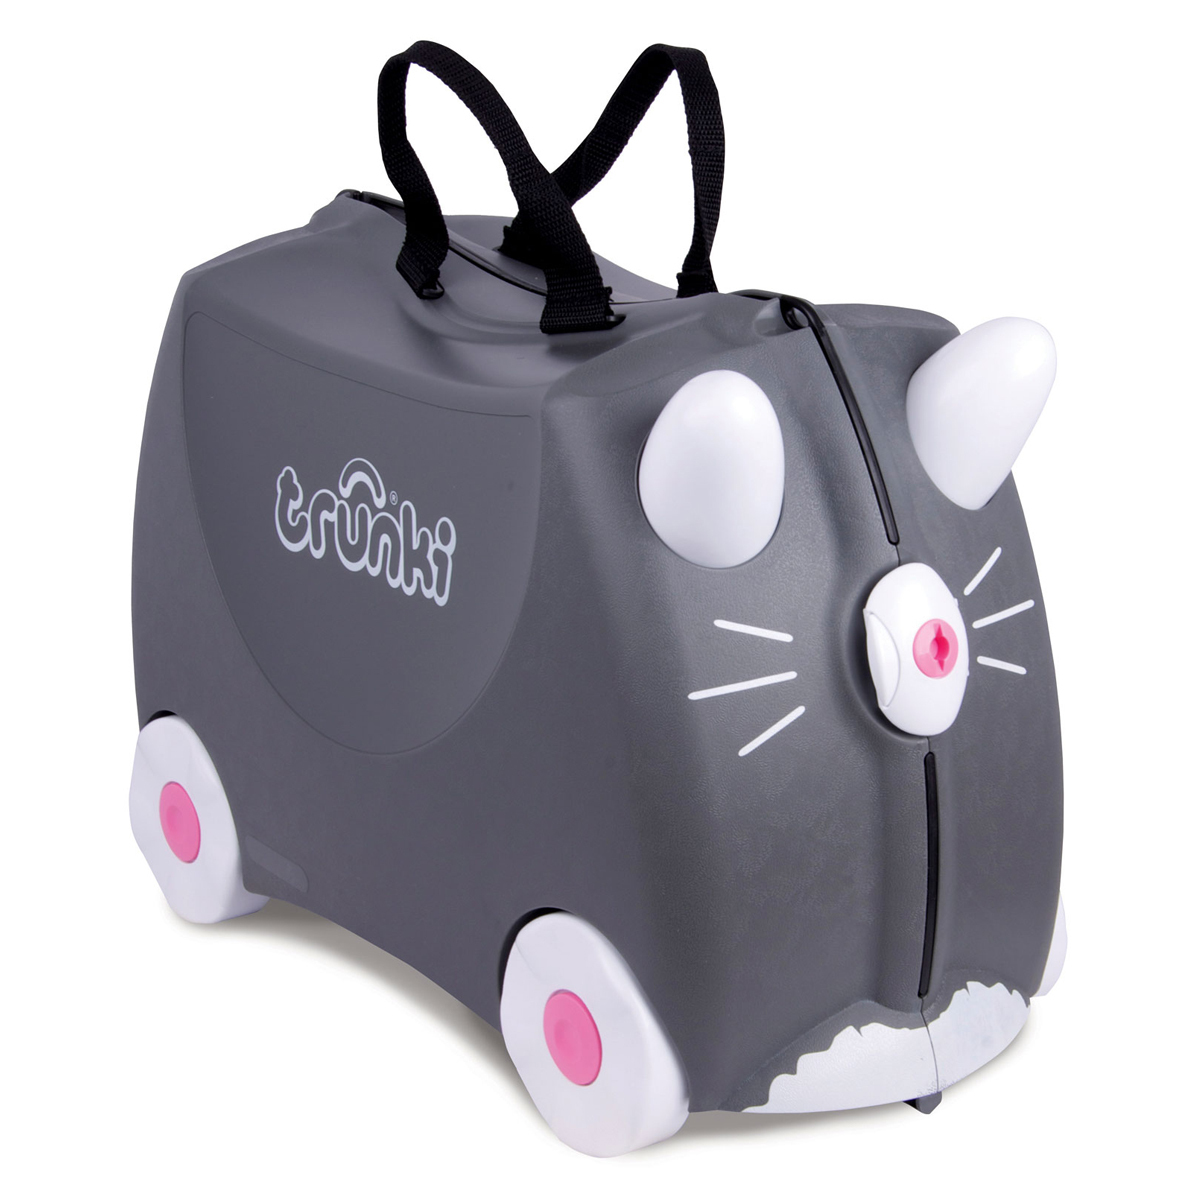 Bagagerie enfant Valise Ride-on - Chat Benny Valise Ride-on - Chat Benny